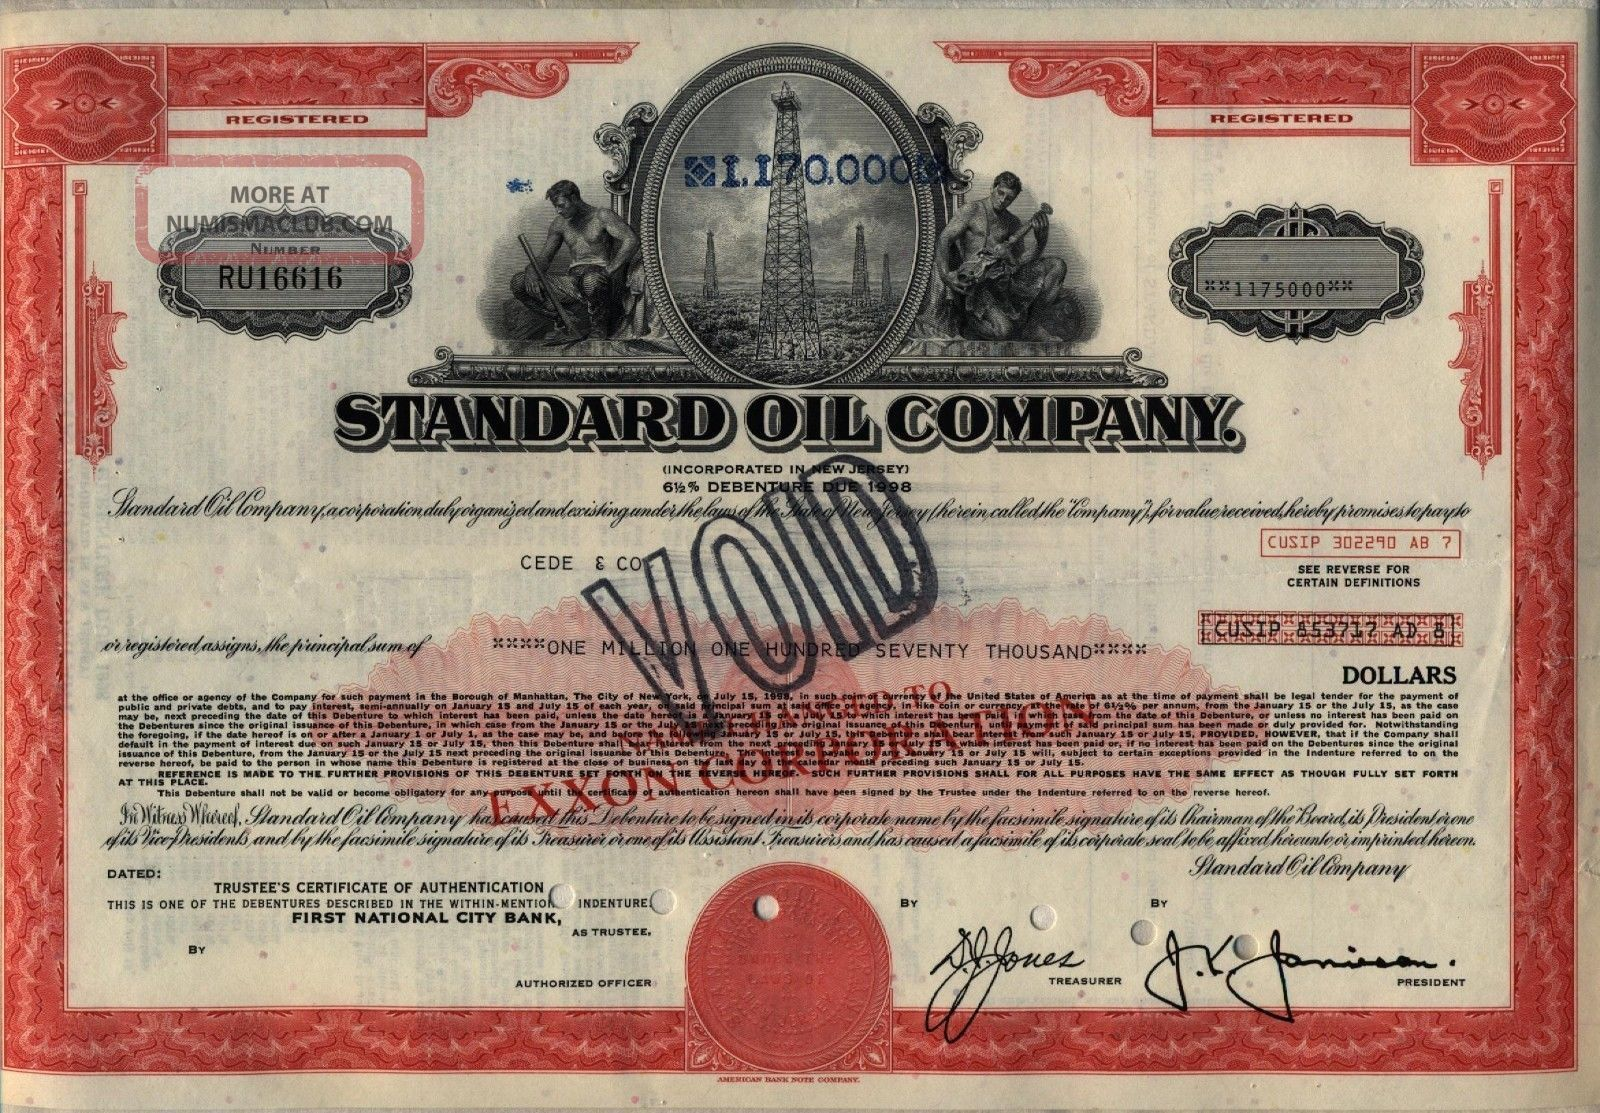 $1,  170,  000 Standard Oil Company Bond Stock Certificate Exxon Stocks & Bonds, Scripophily photo